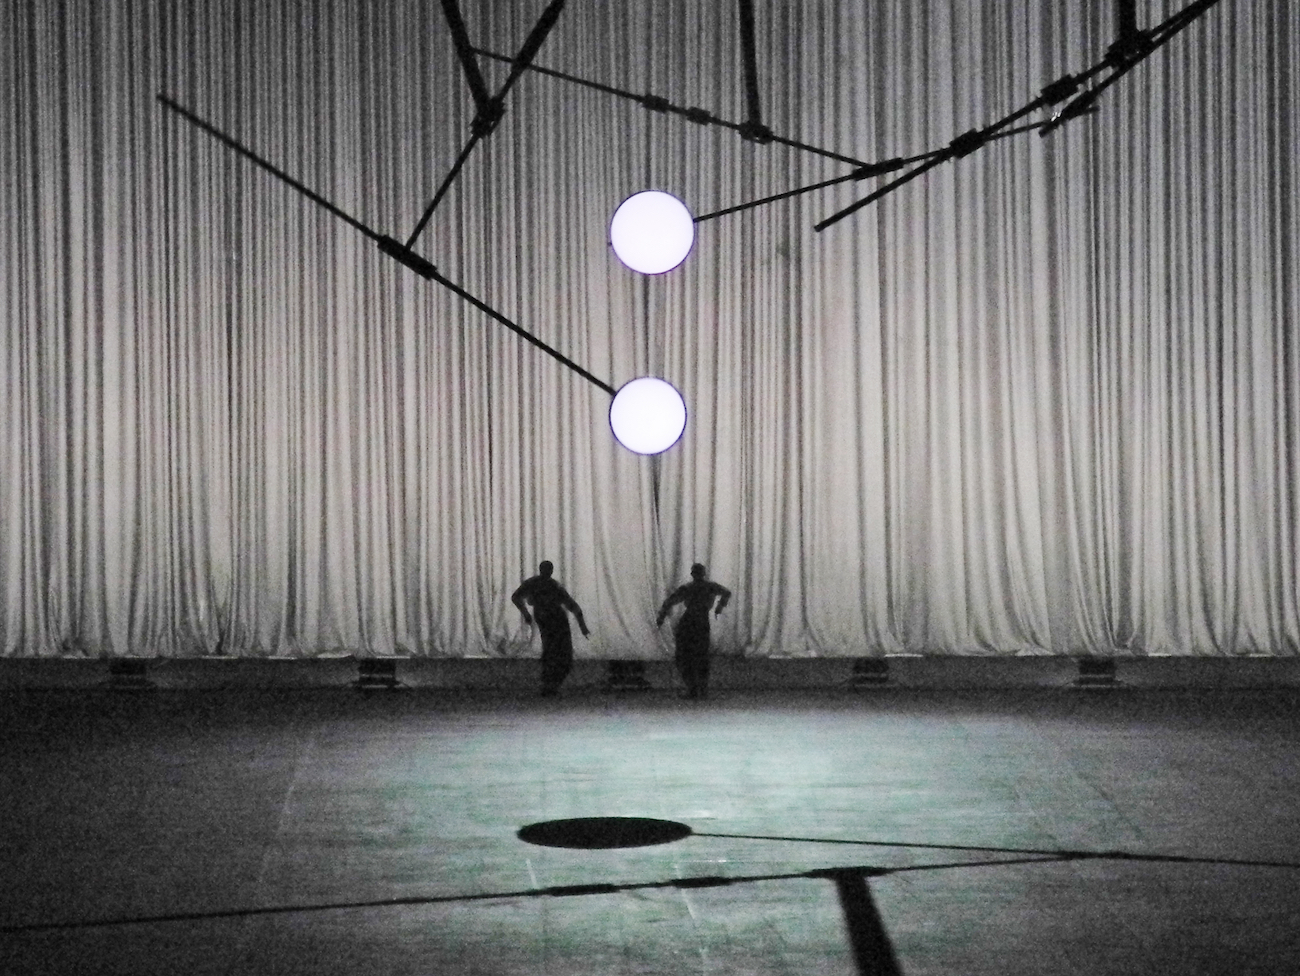 De Materie (Louis Andriessen), Set and lighting design: Klaus Grünberg, Ruhrtriennale, 2014